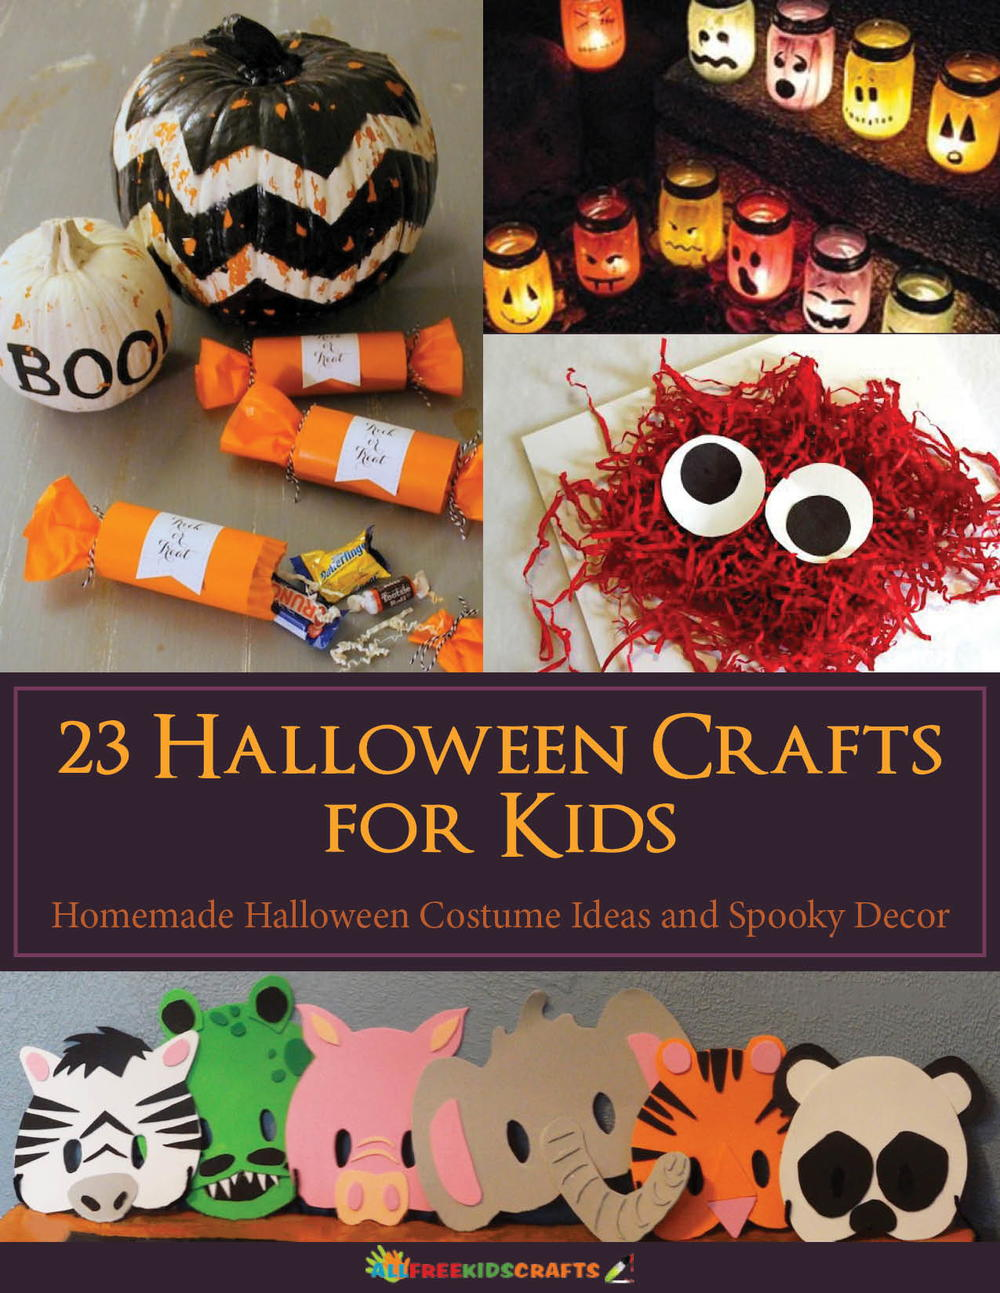 23 halloween crafts for kids: homemade halloween costume ideas and